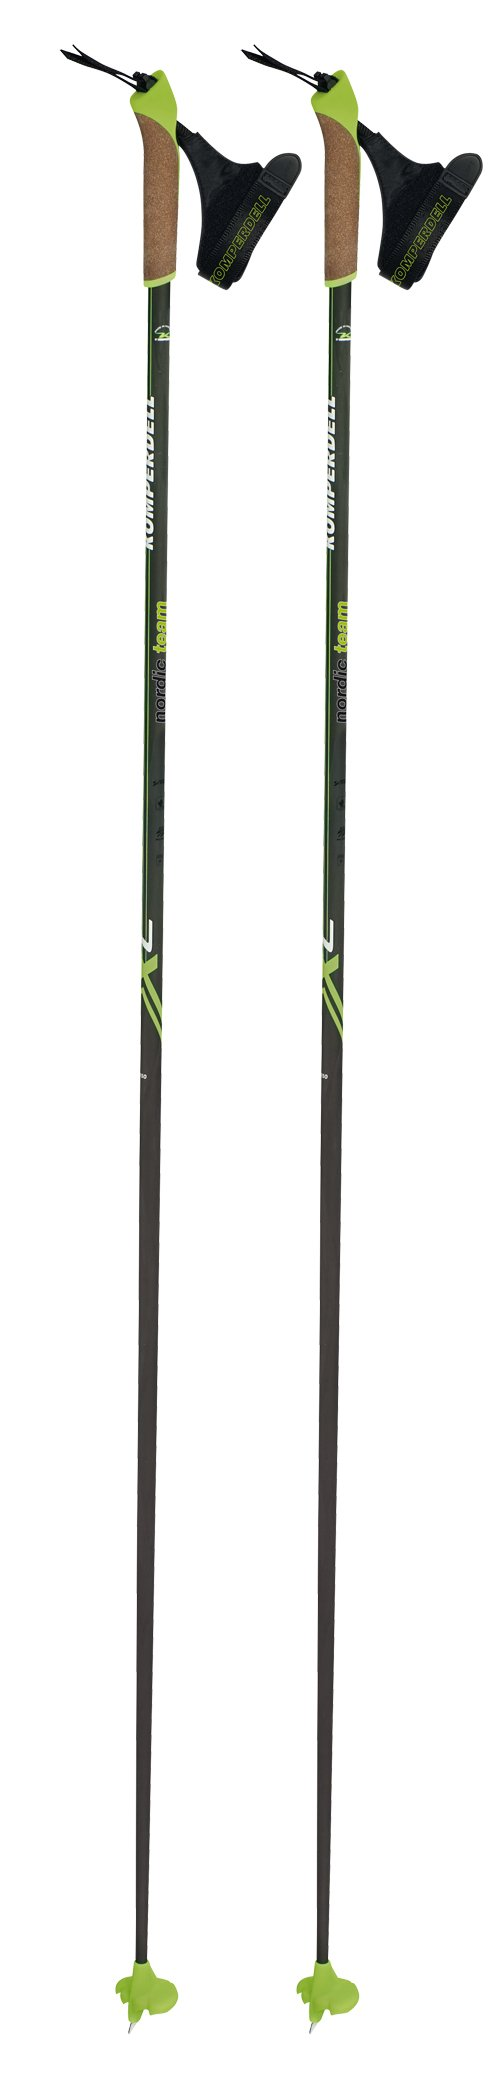 Komperdell 520230610 Nordic Carbon Team, Black, 150cm by Komperdell